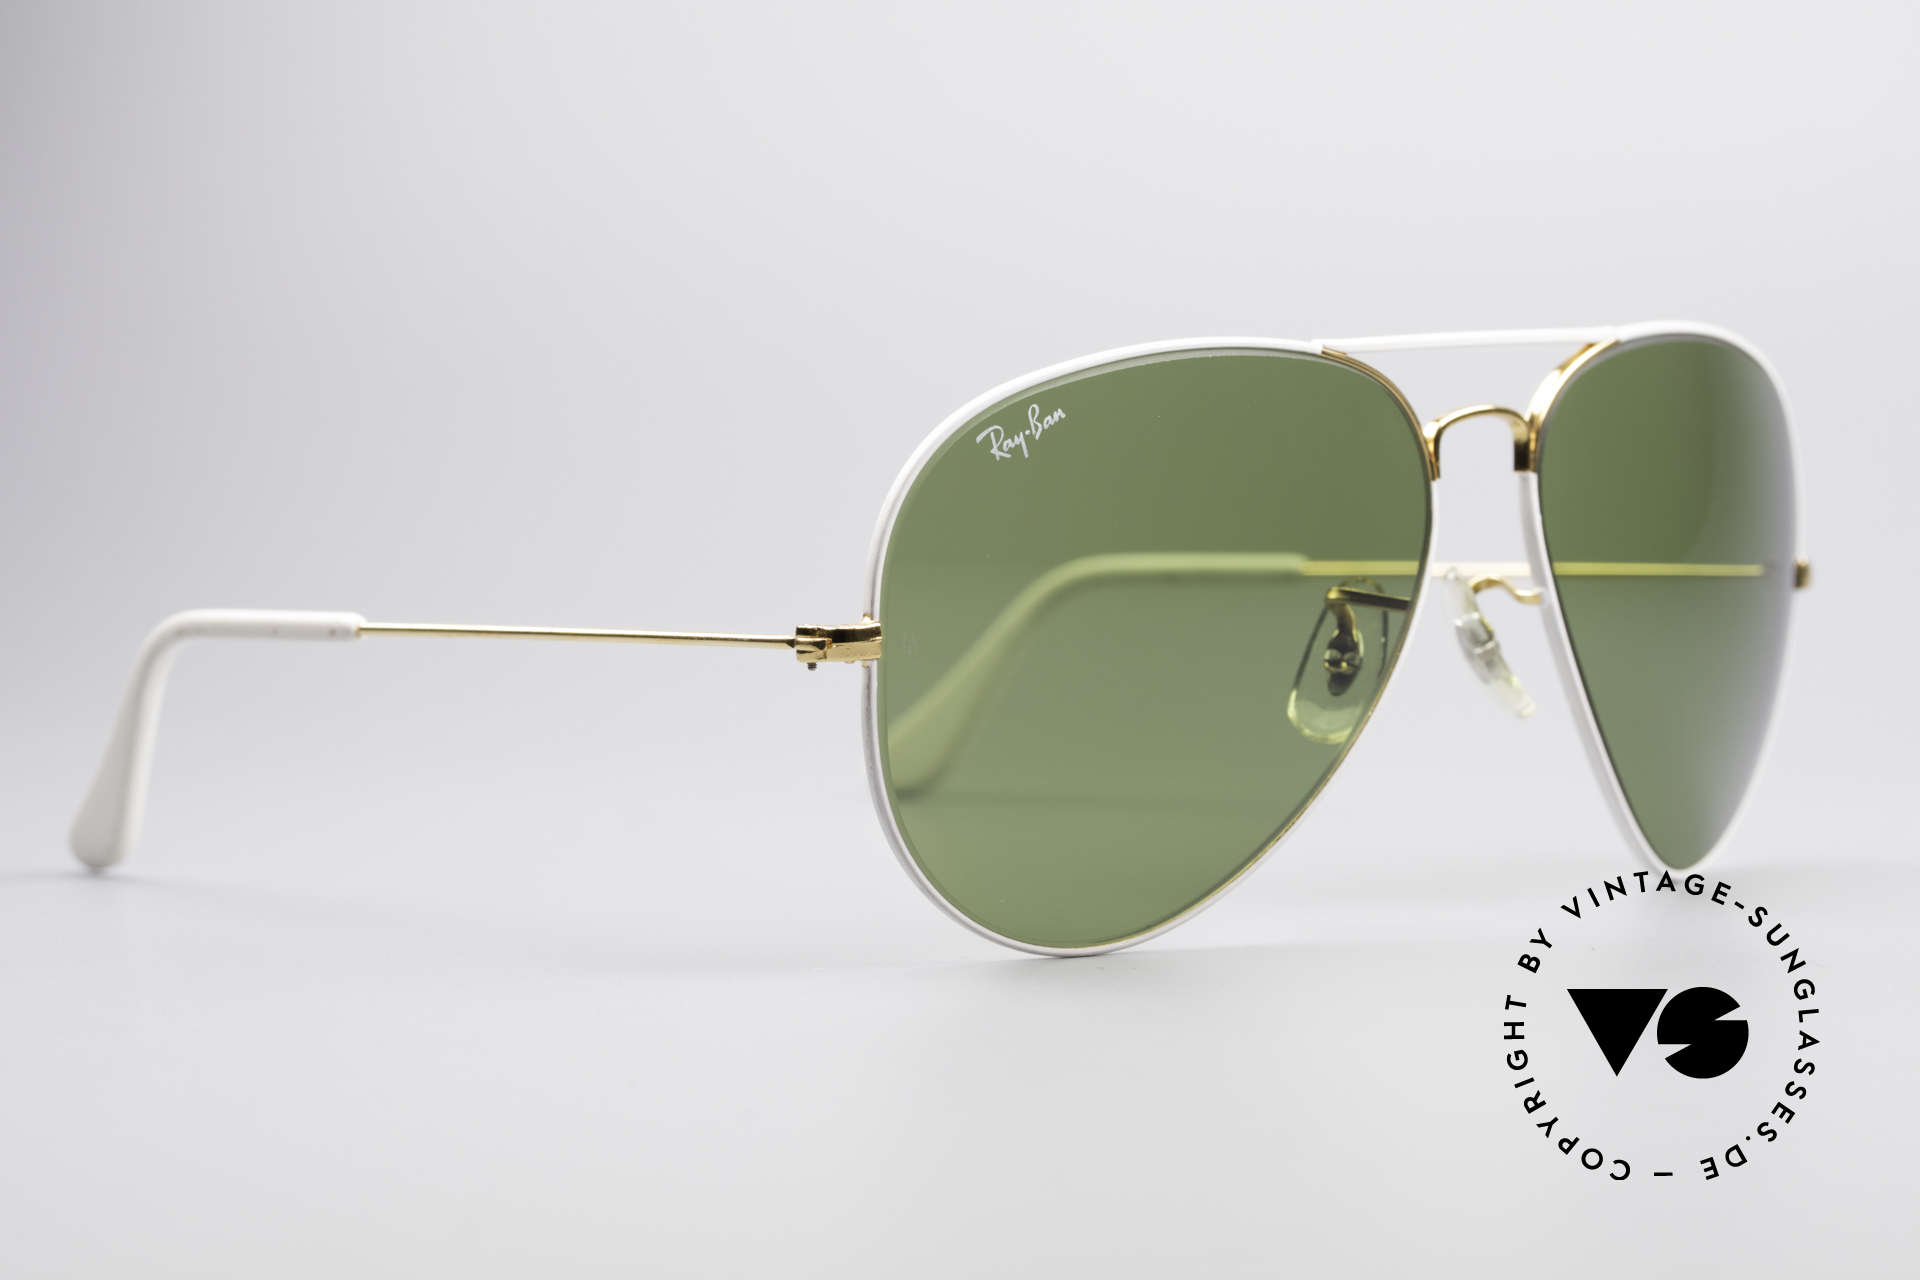 Ray Ban Large Metal II Flying Colors Limited Edition, produziert in den 1970ern & 80ern v. Bausch&Lomb, Passend für Herren